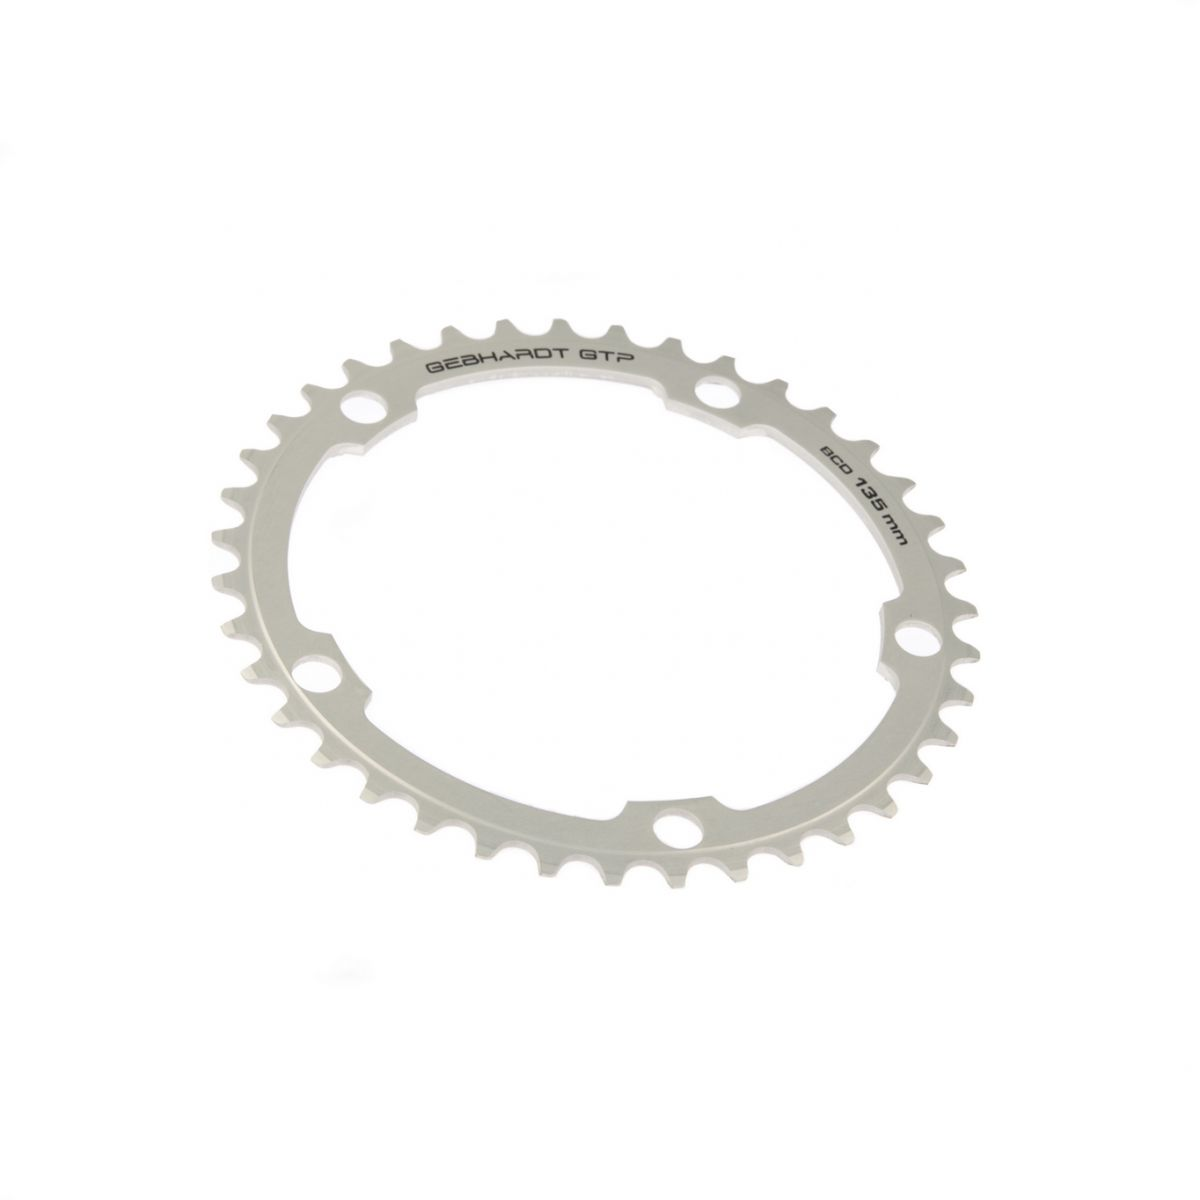 gebhardt chainring classic bcd 135 mm 5hole 39t silver